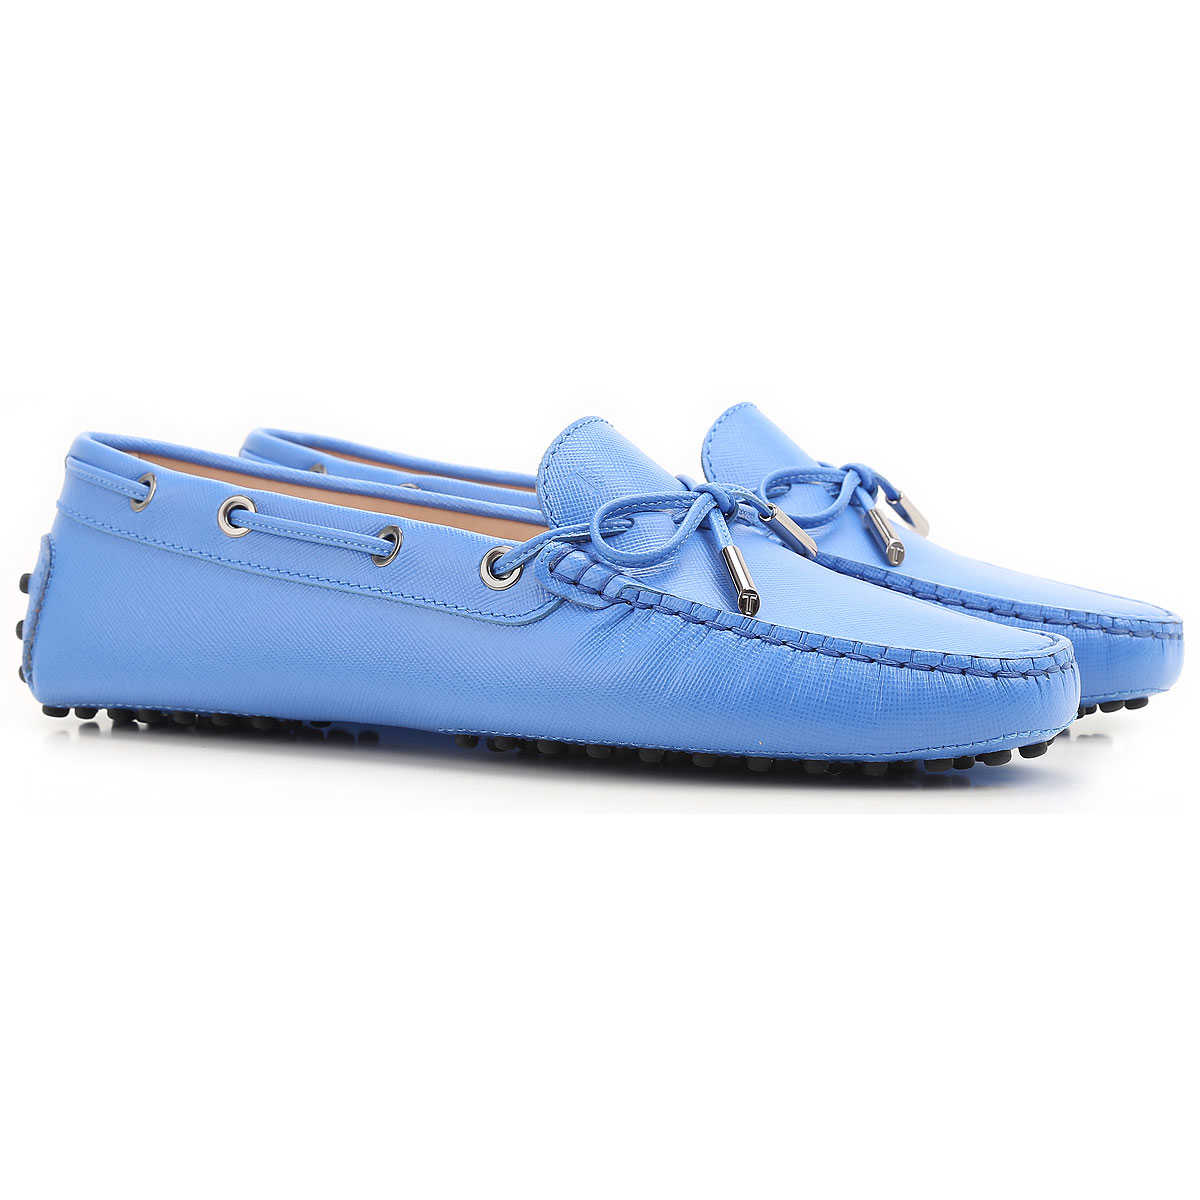 Tods Loafers for Women On Sale in Outlet